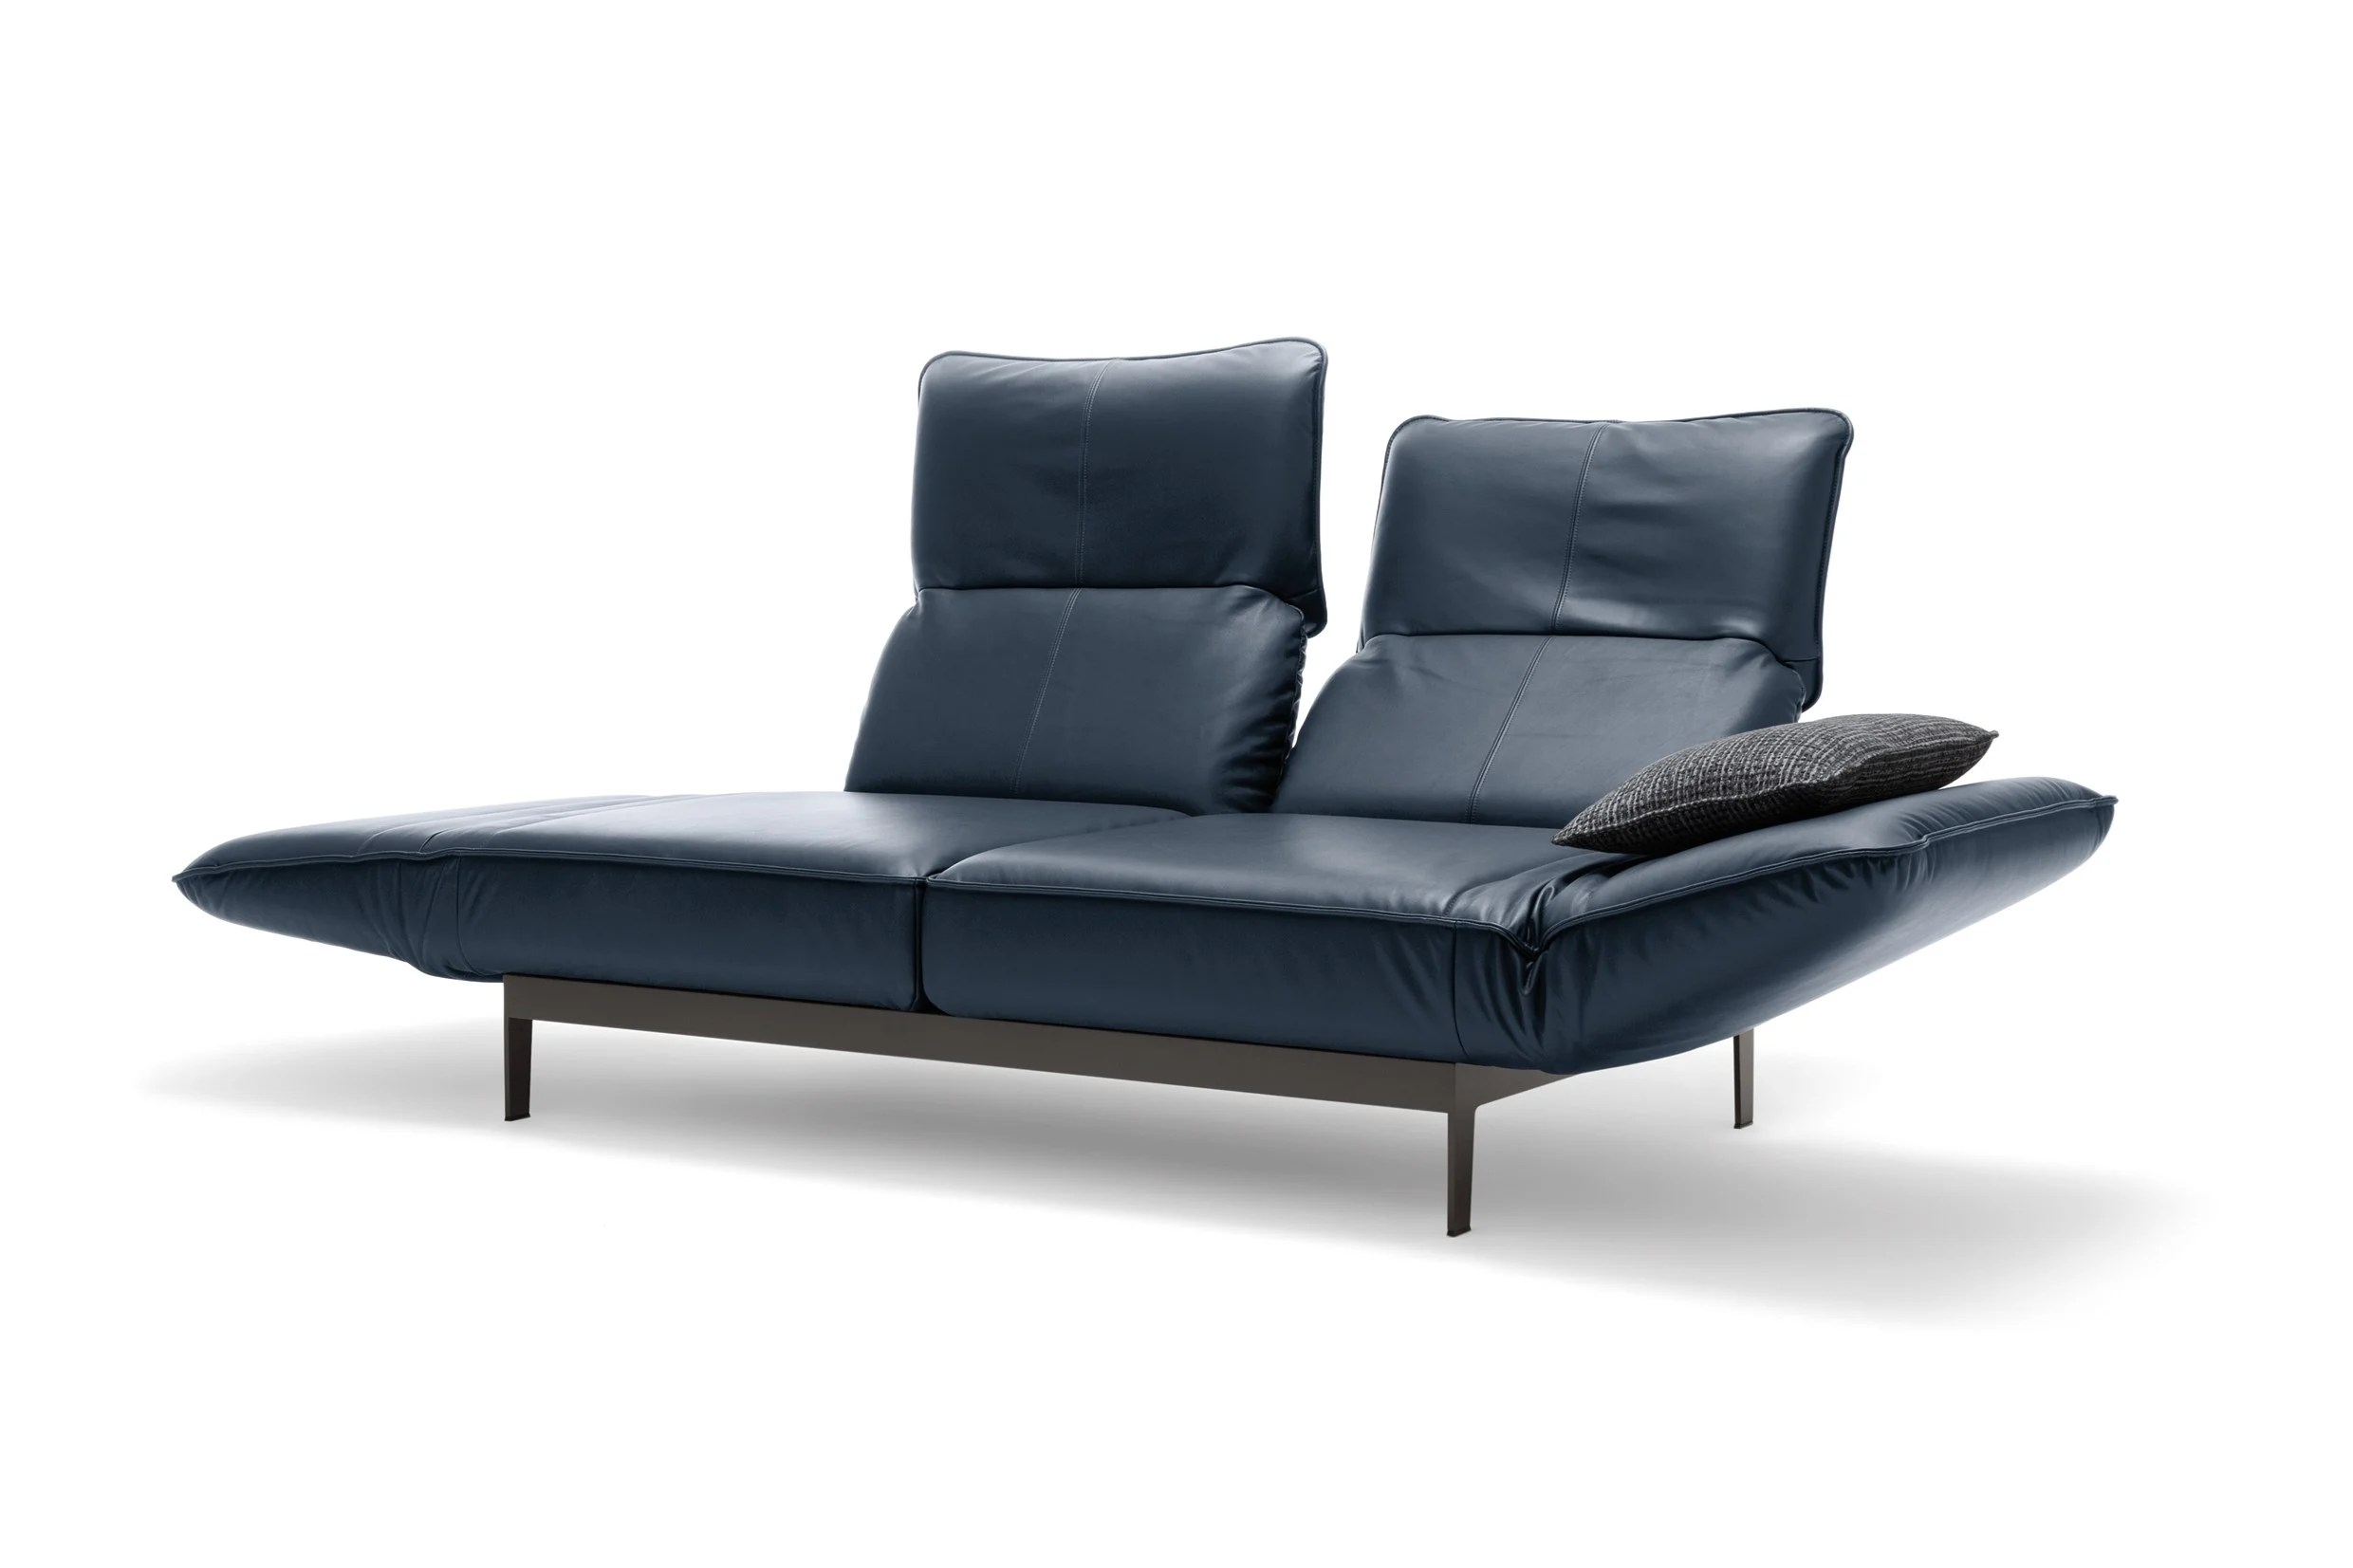 Rolf Benz Sofa Mera Leather Sofa Mera Collection By Rolf Benz Design